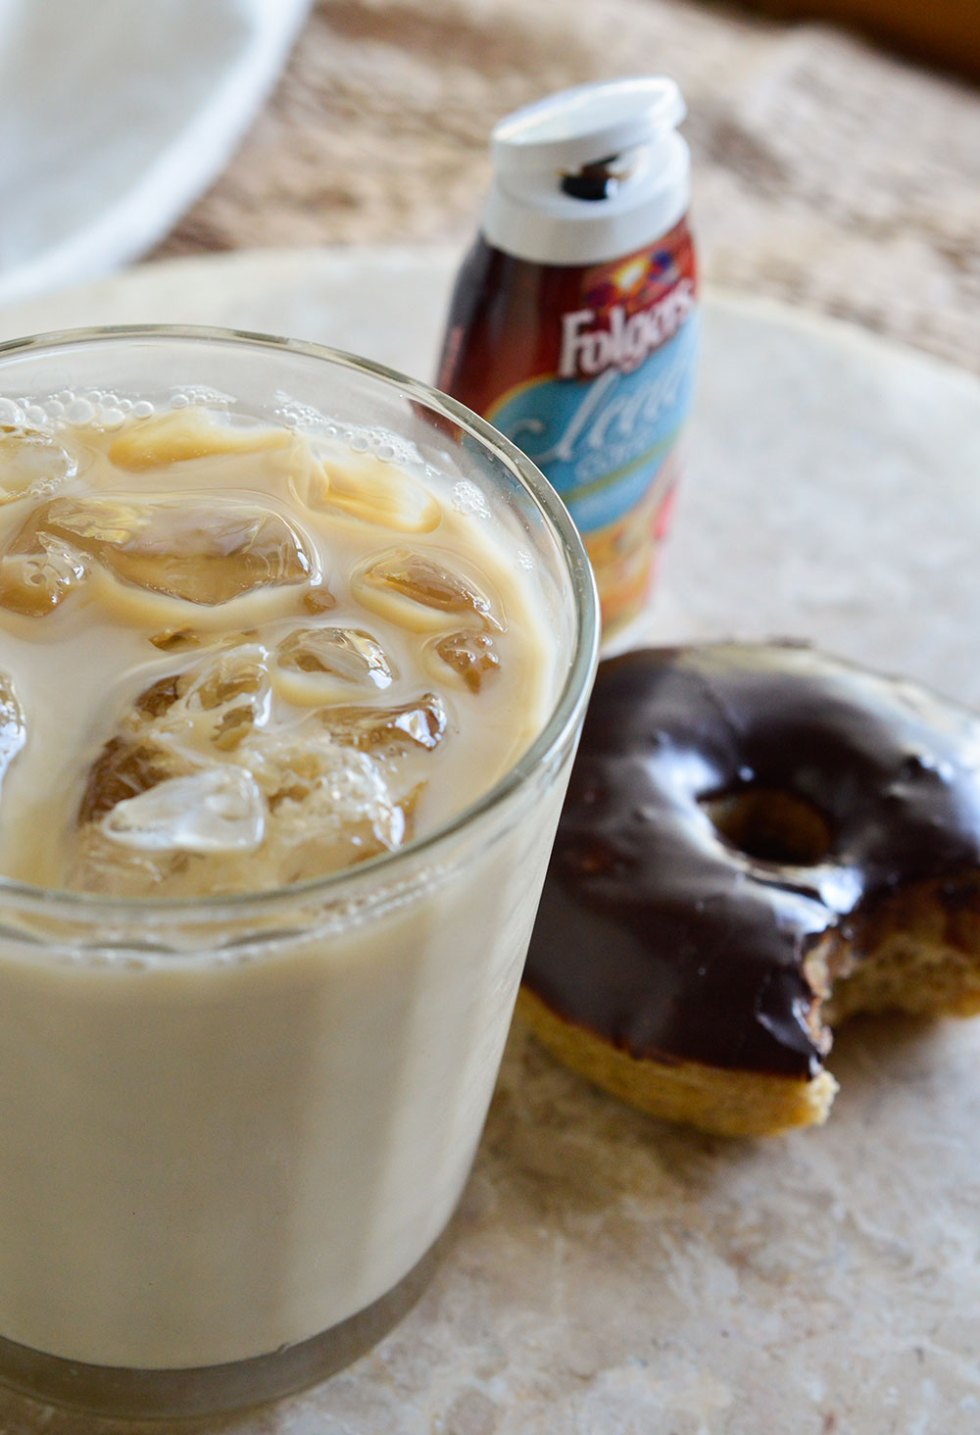 Chocolate Glazed Banana Donuts and Iced Coffee for the ultimate summer breakfast! This baked donut recipe is super quick and easy! Doughnuts + Coffee = Good Morning!